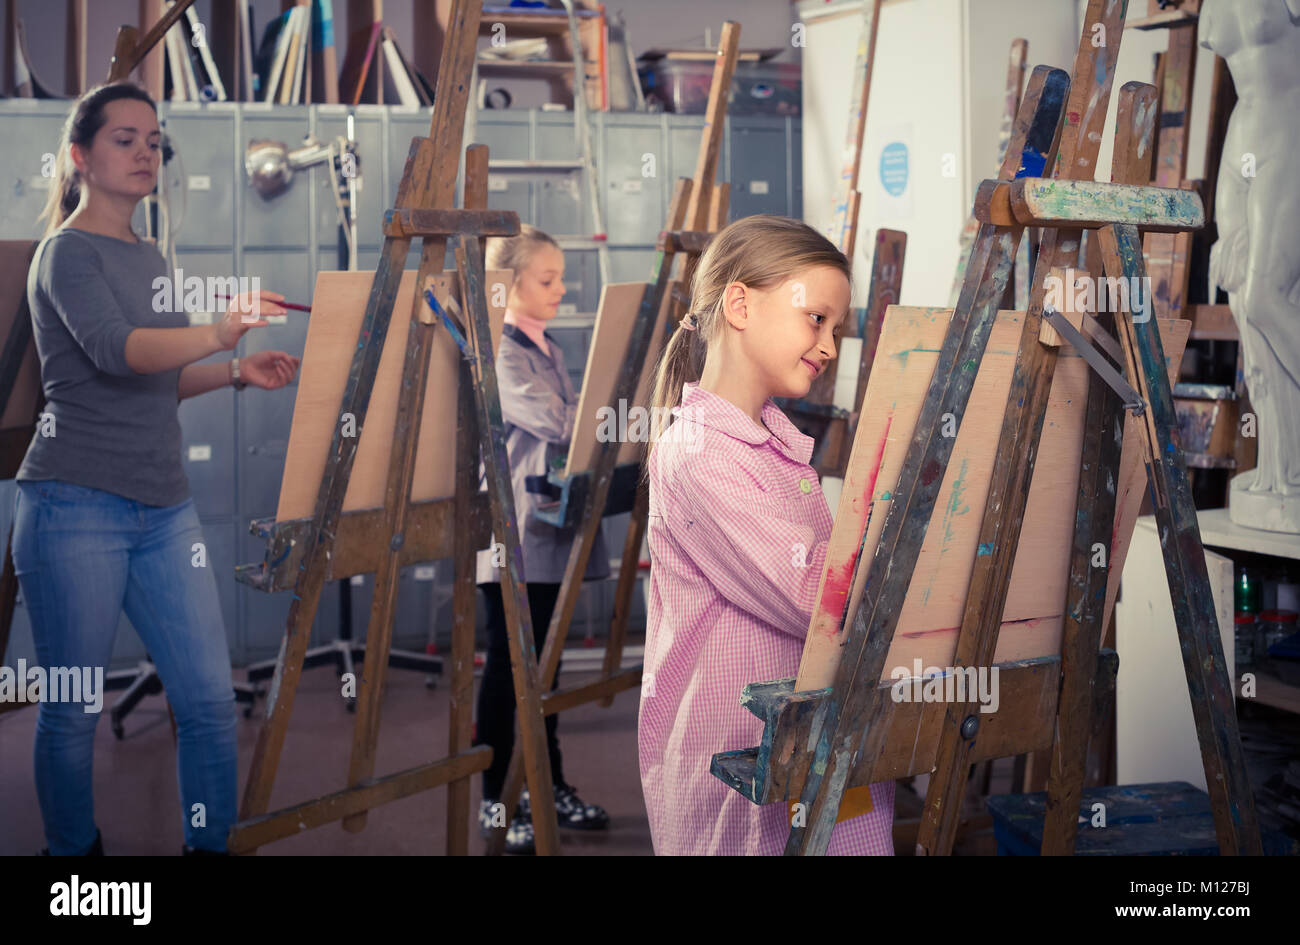 happy germany schoolgirls diligently training their painting skills during class at art studio - Stock Image